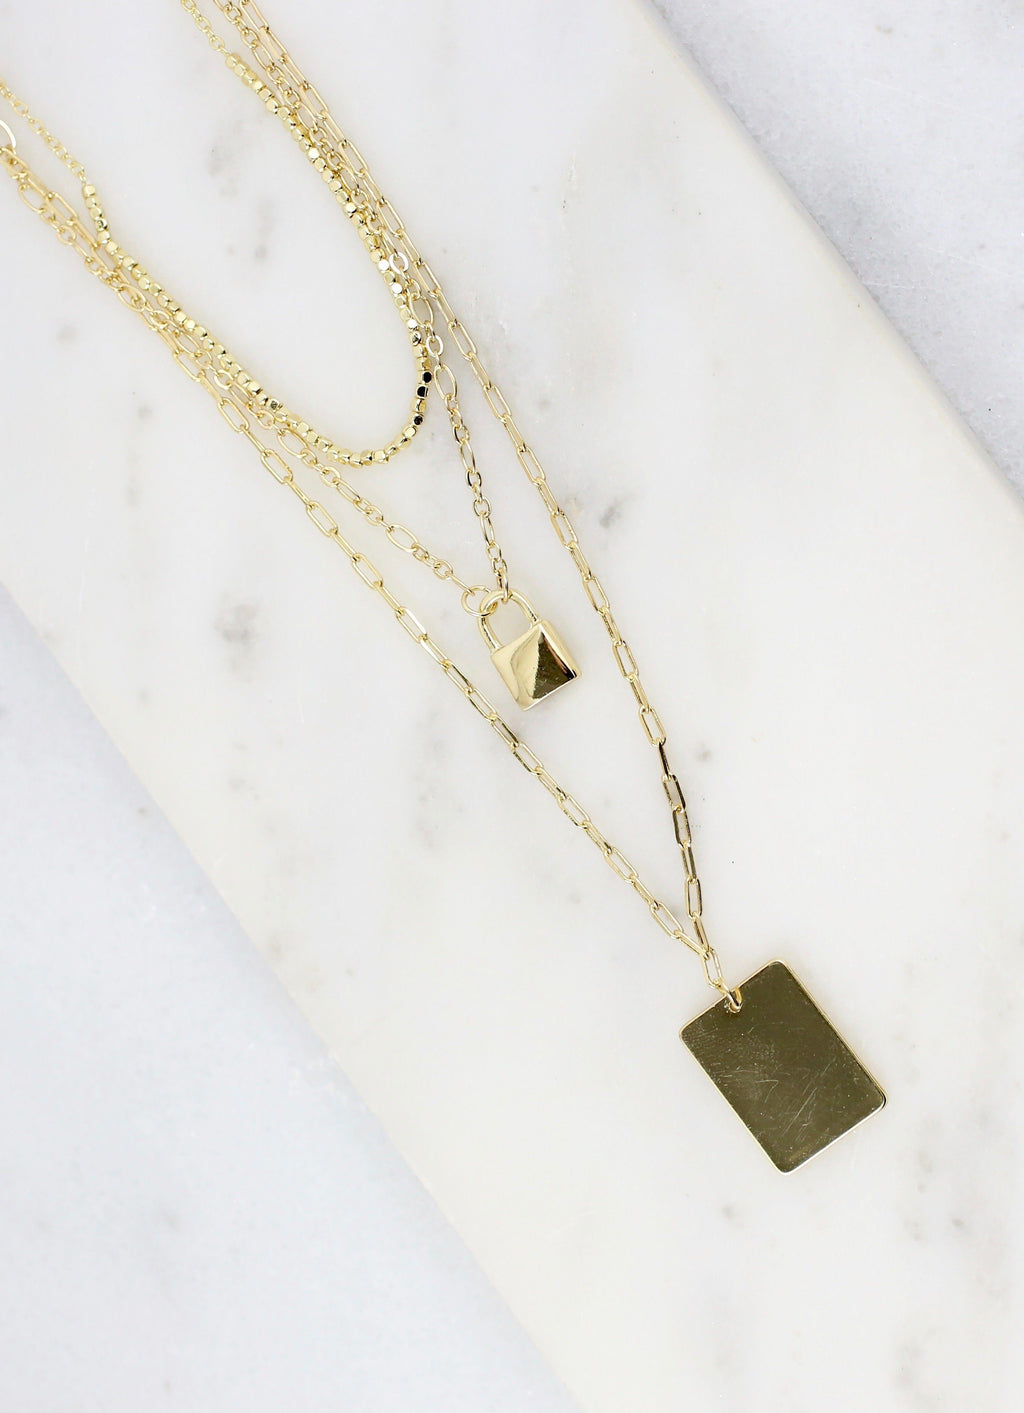 Lennie Gold Layered Metal Tag and Lock Necklace - Caroline Hill